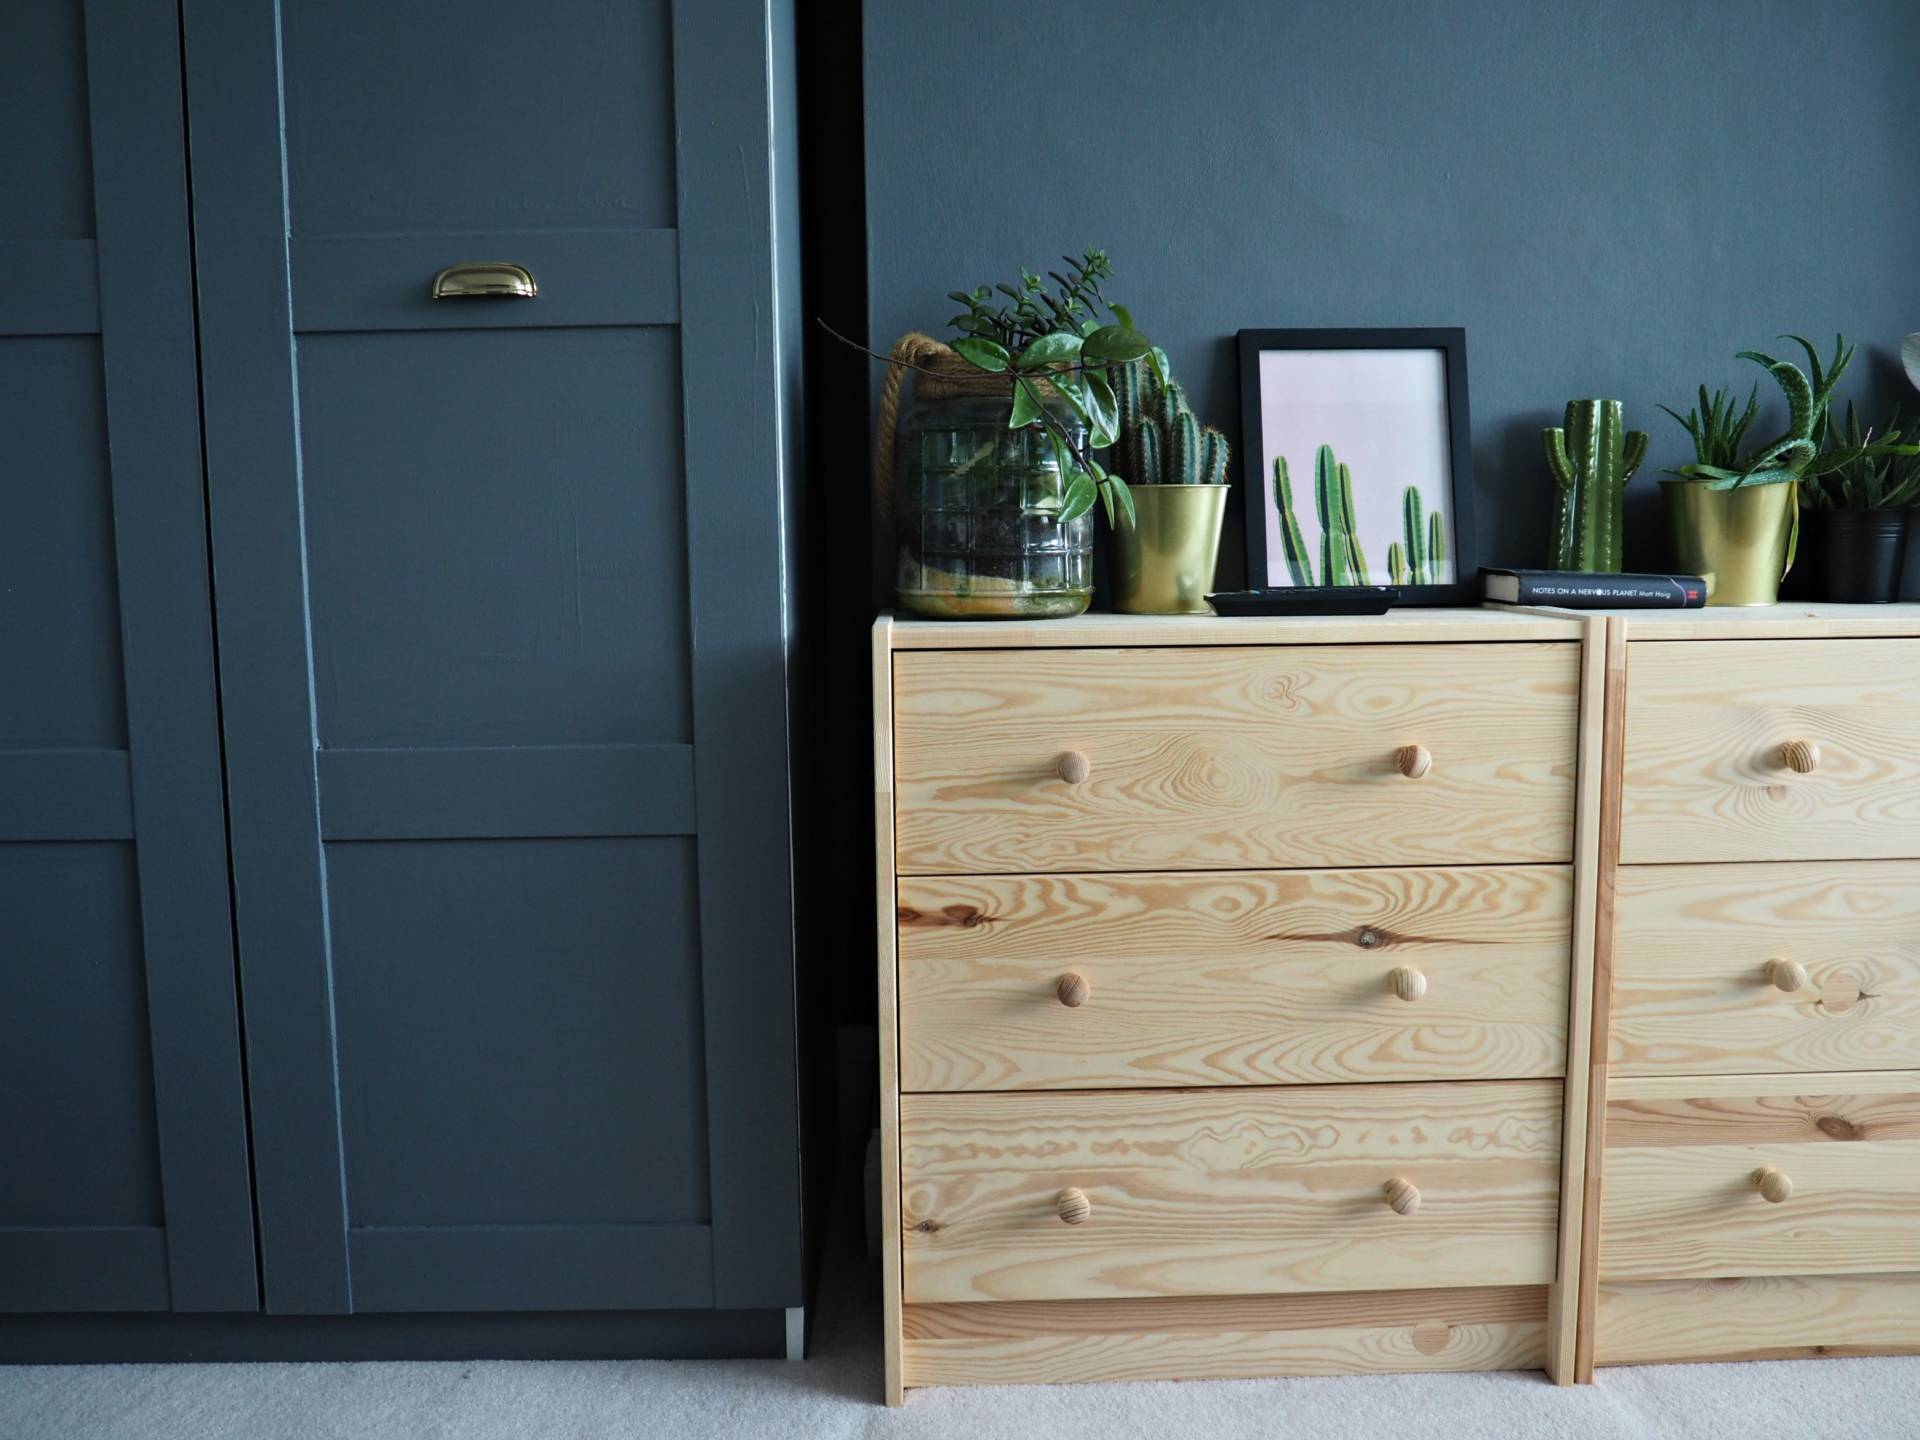 Dark grey Ikea Pax wardrobes